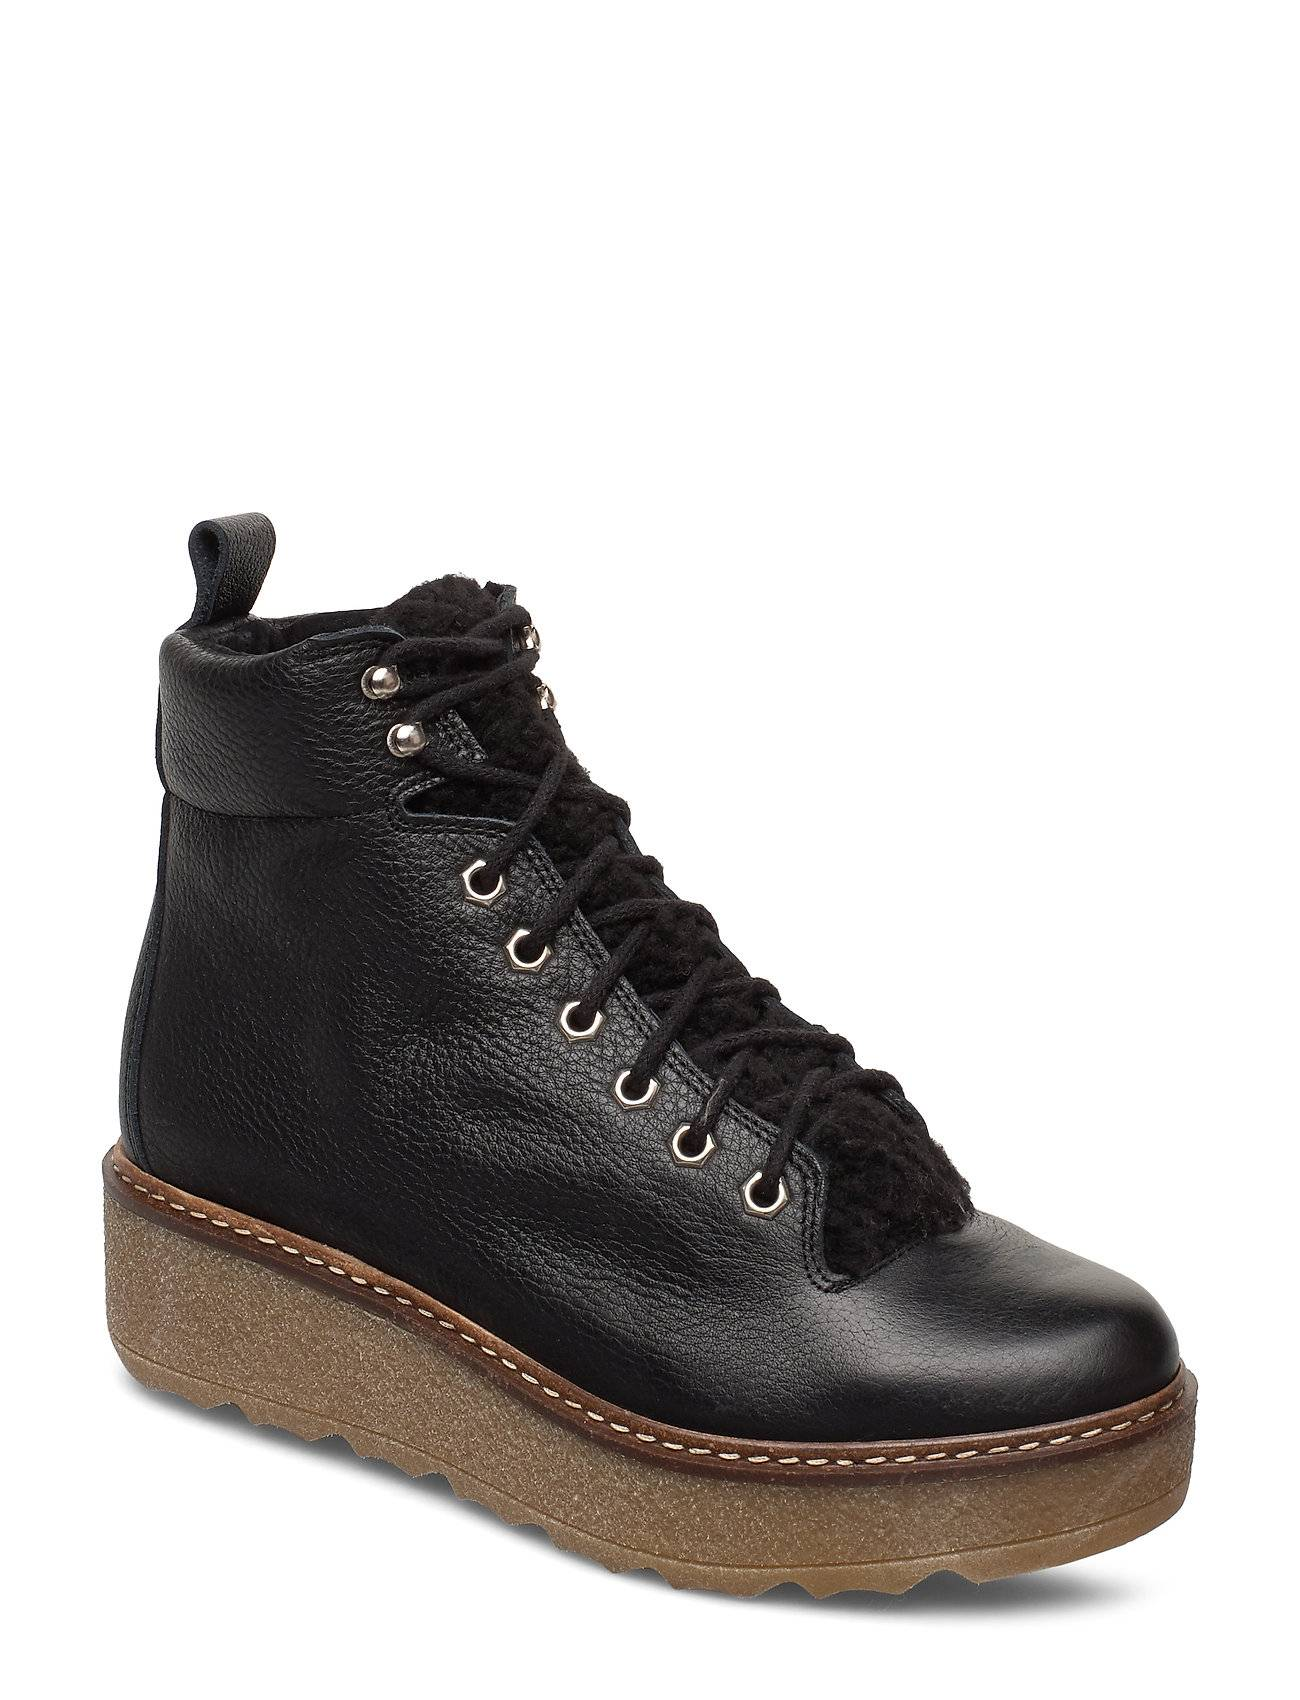 Shoe The Bear Bex L Shoes Boots Ankle Boots Ankle Boots Flat Heel Musta Shoe The Bear